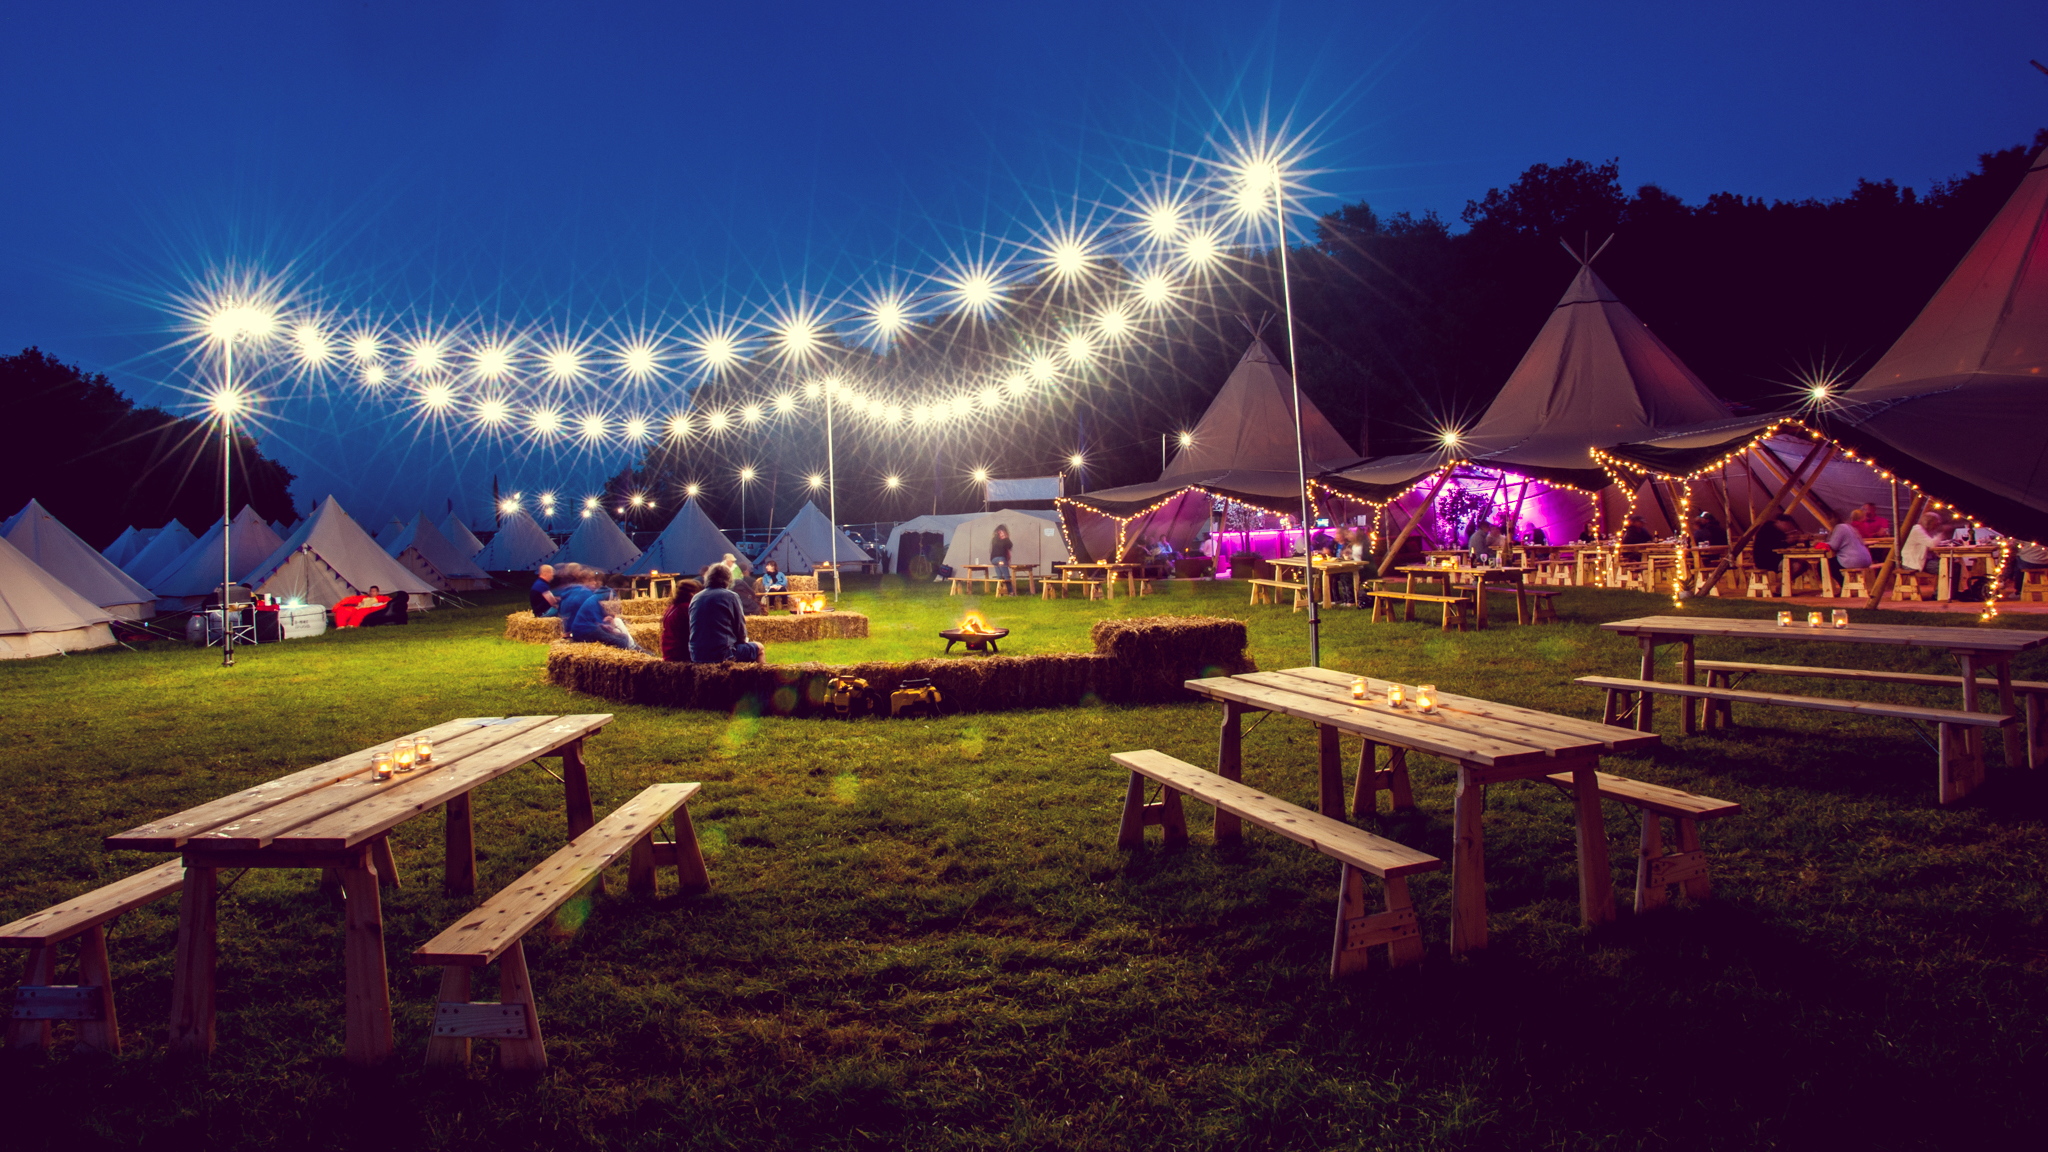 Hotel Bell Tent Accommodation Night Time Festoon Lights